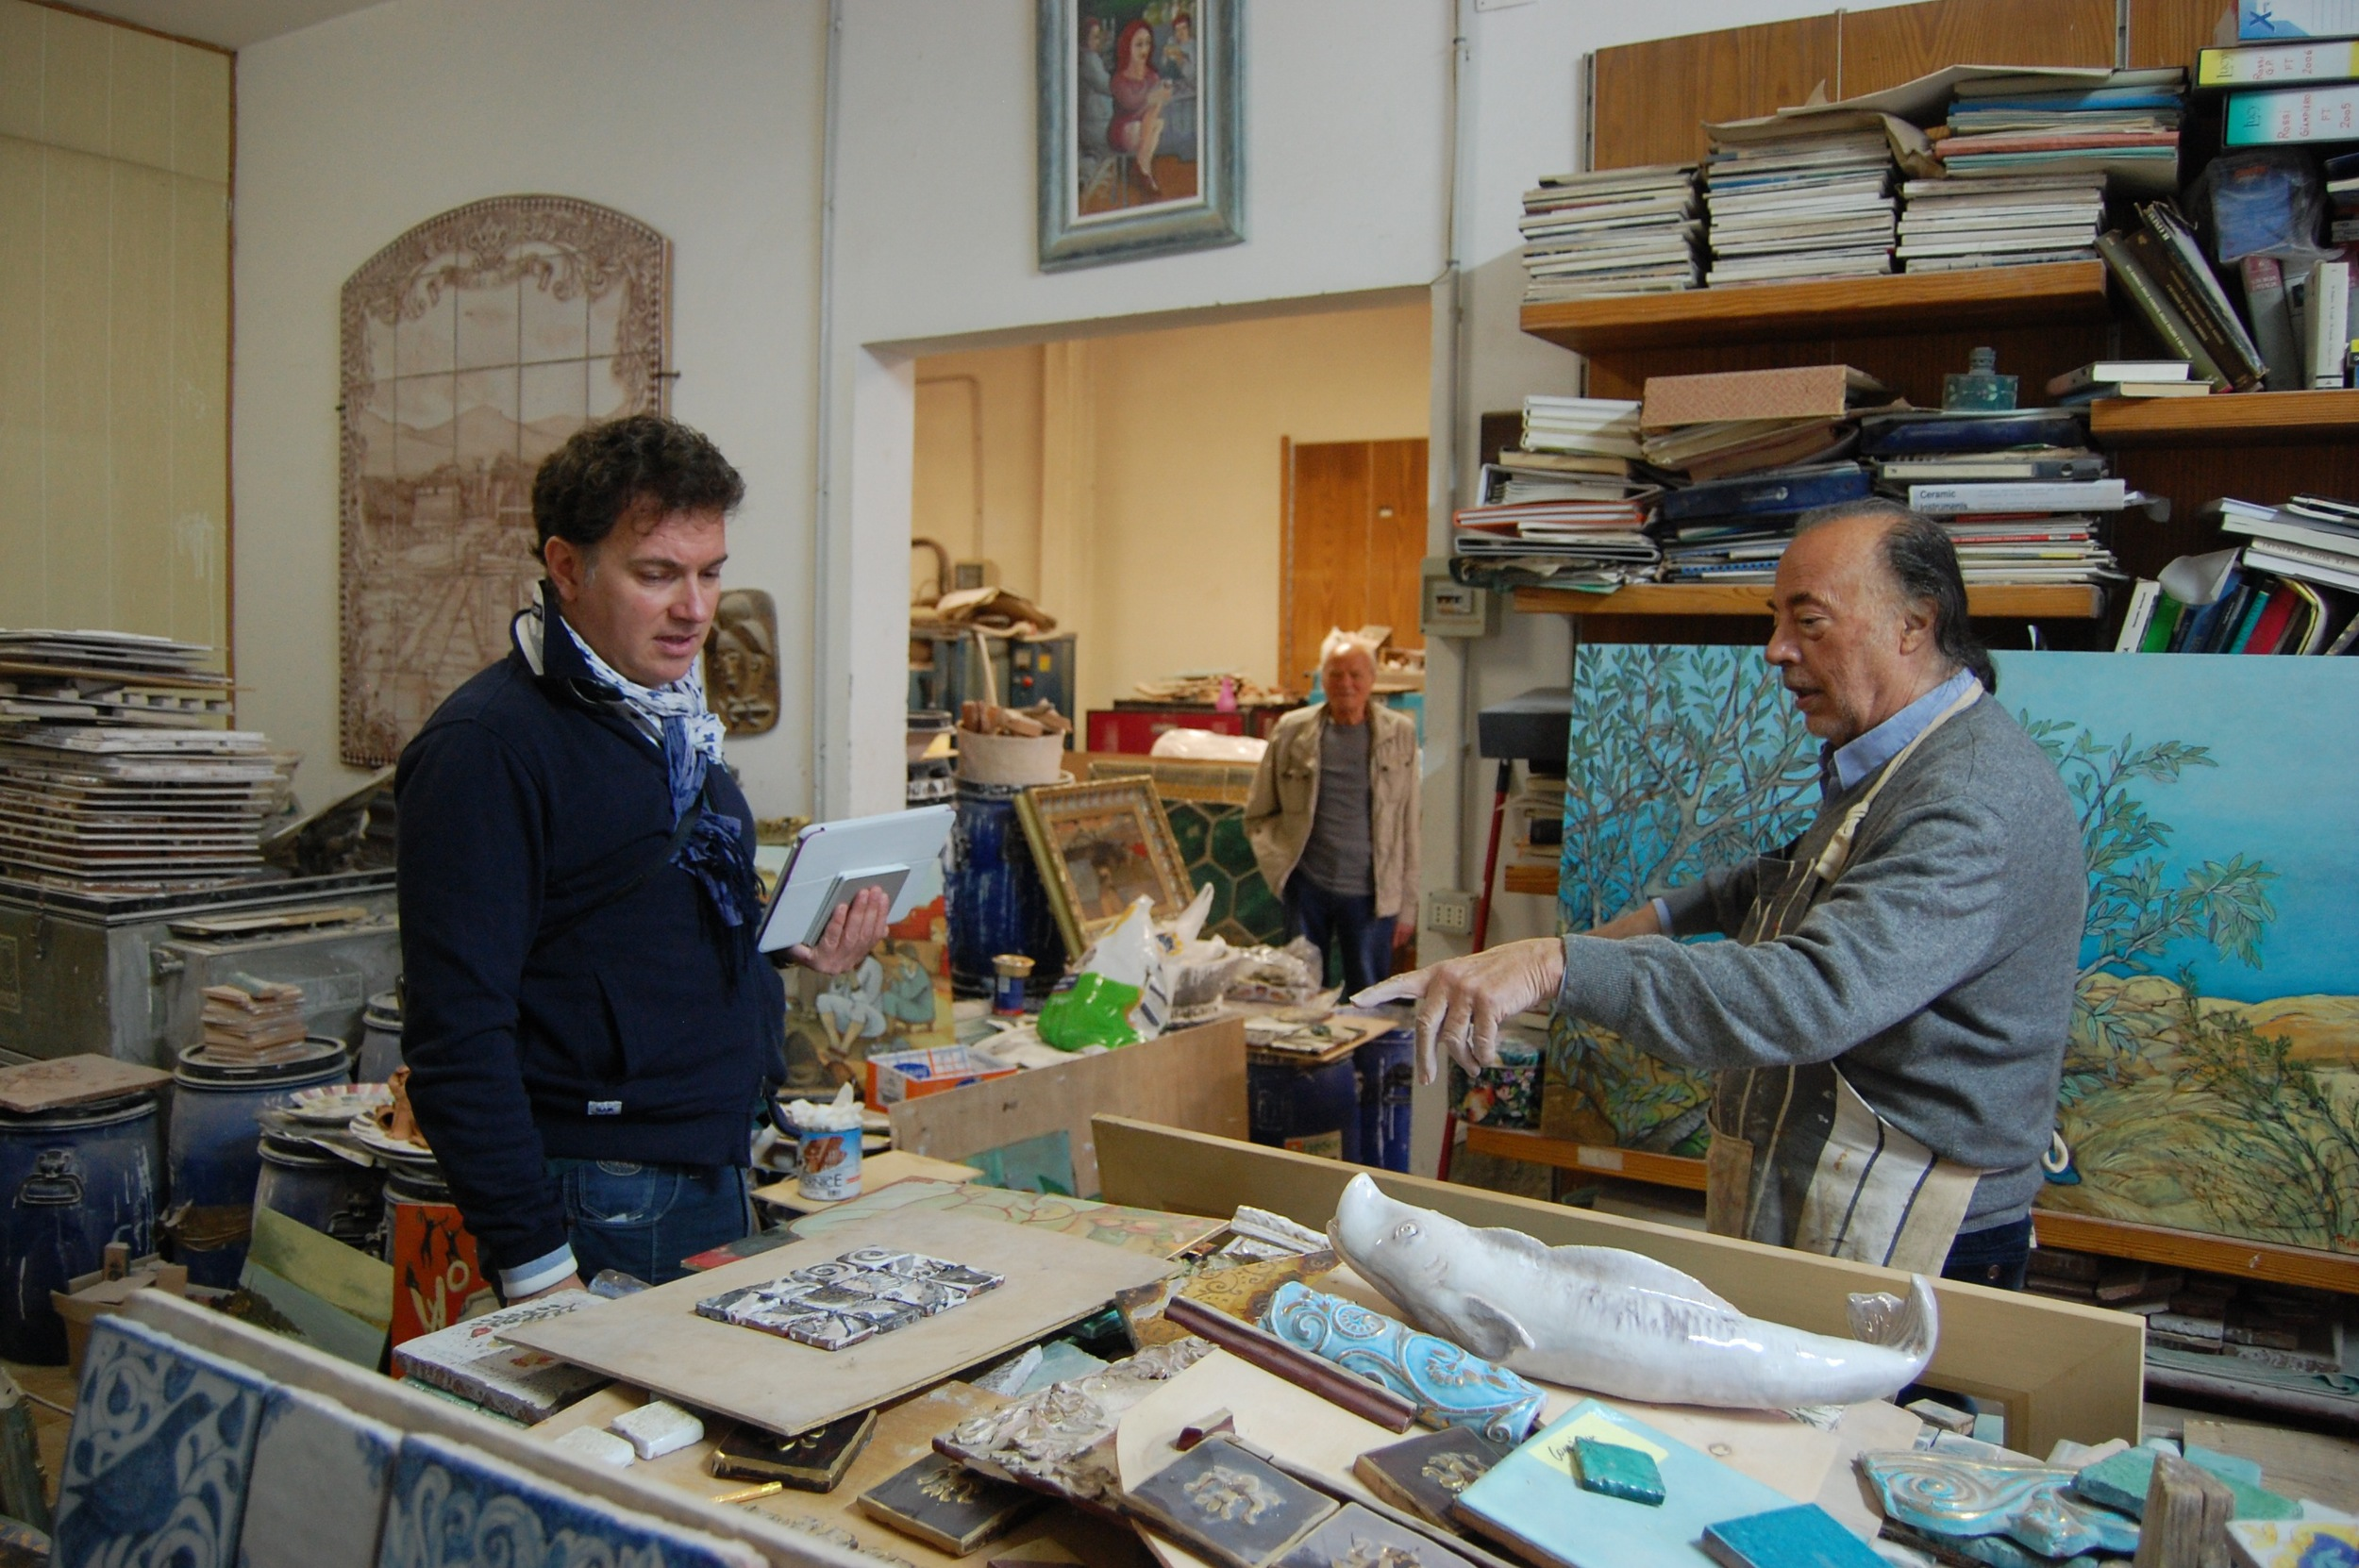 Gianpiero shows his work to Giorgio